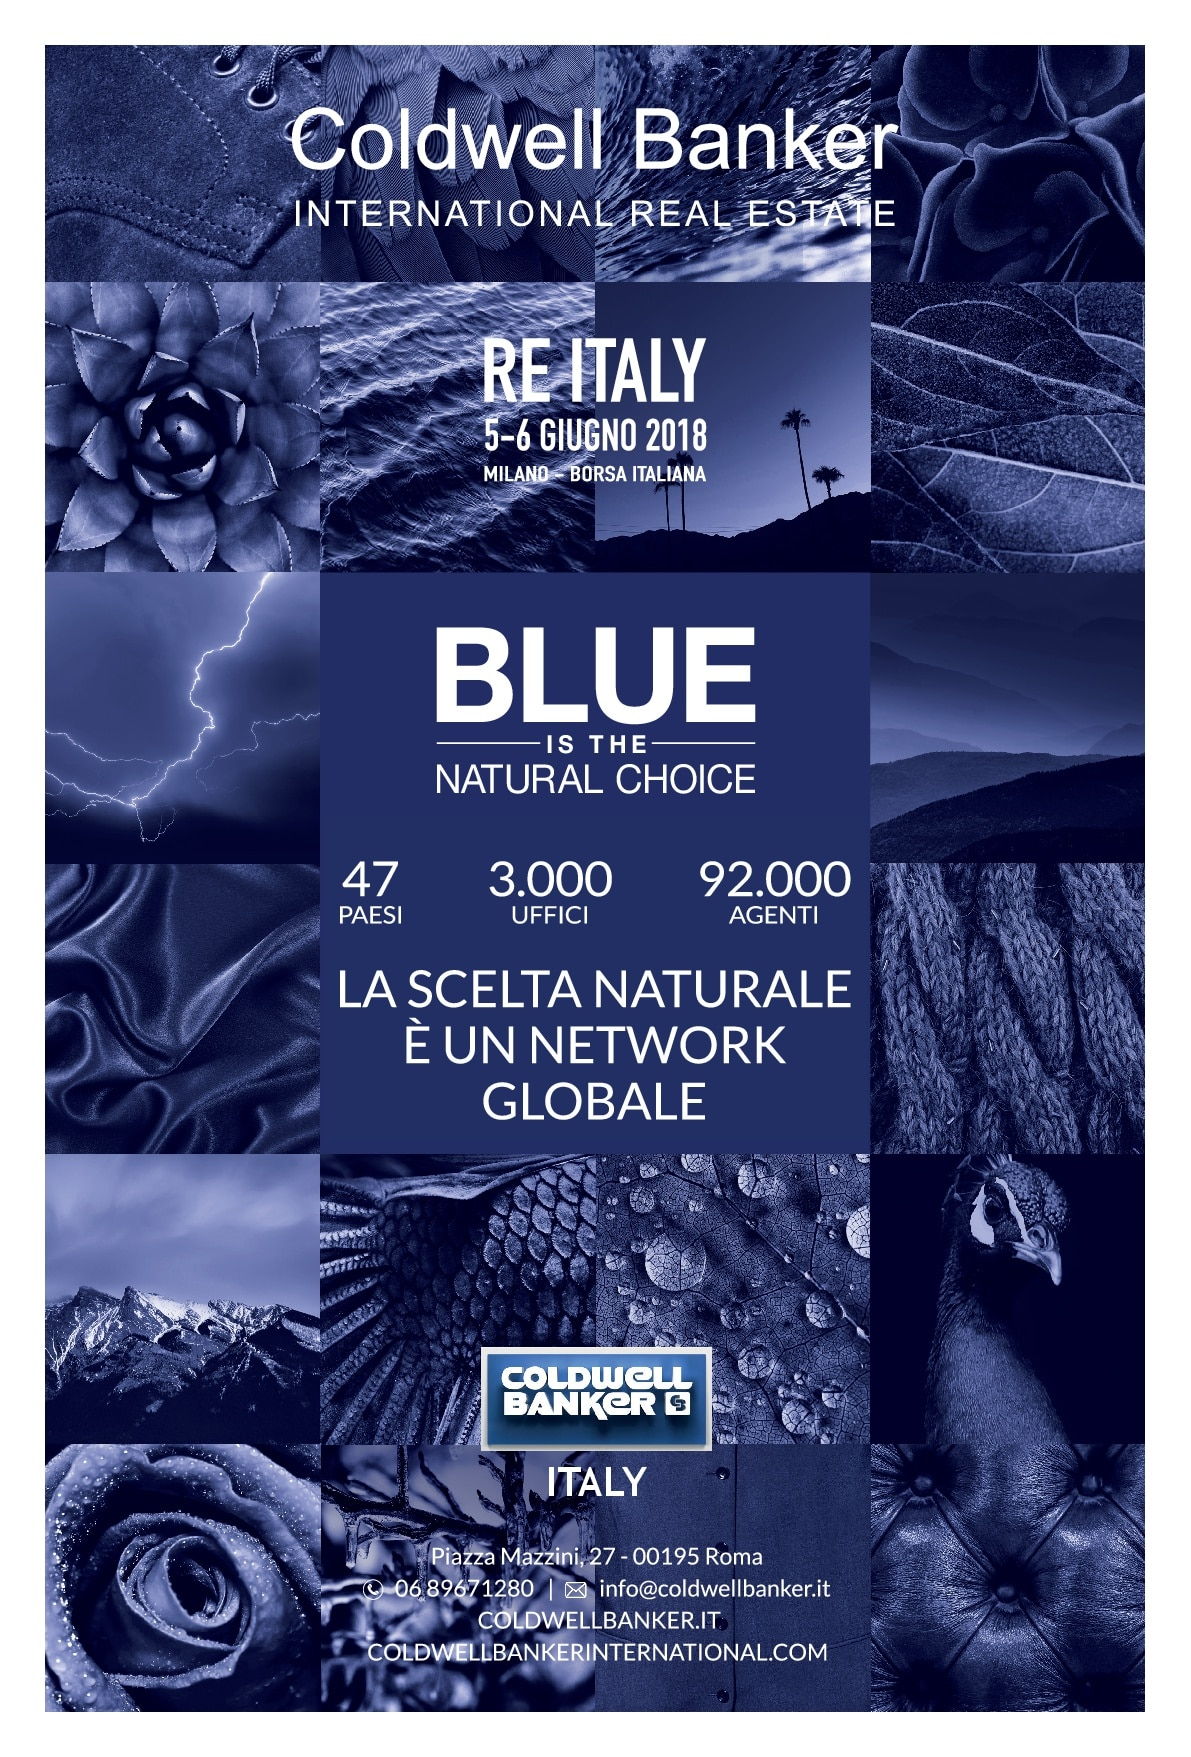 - REview 2 001 - RE ITALY 2018, Coldwell Banker top player della nota rassegna immobiliare